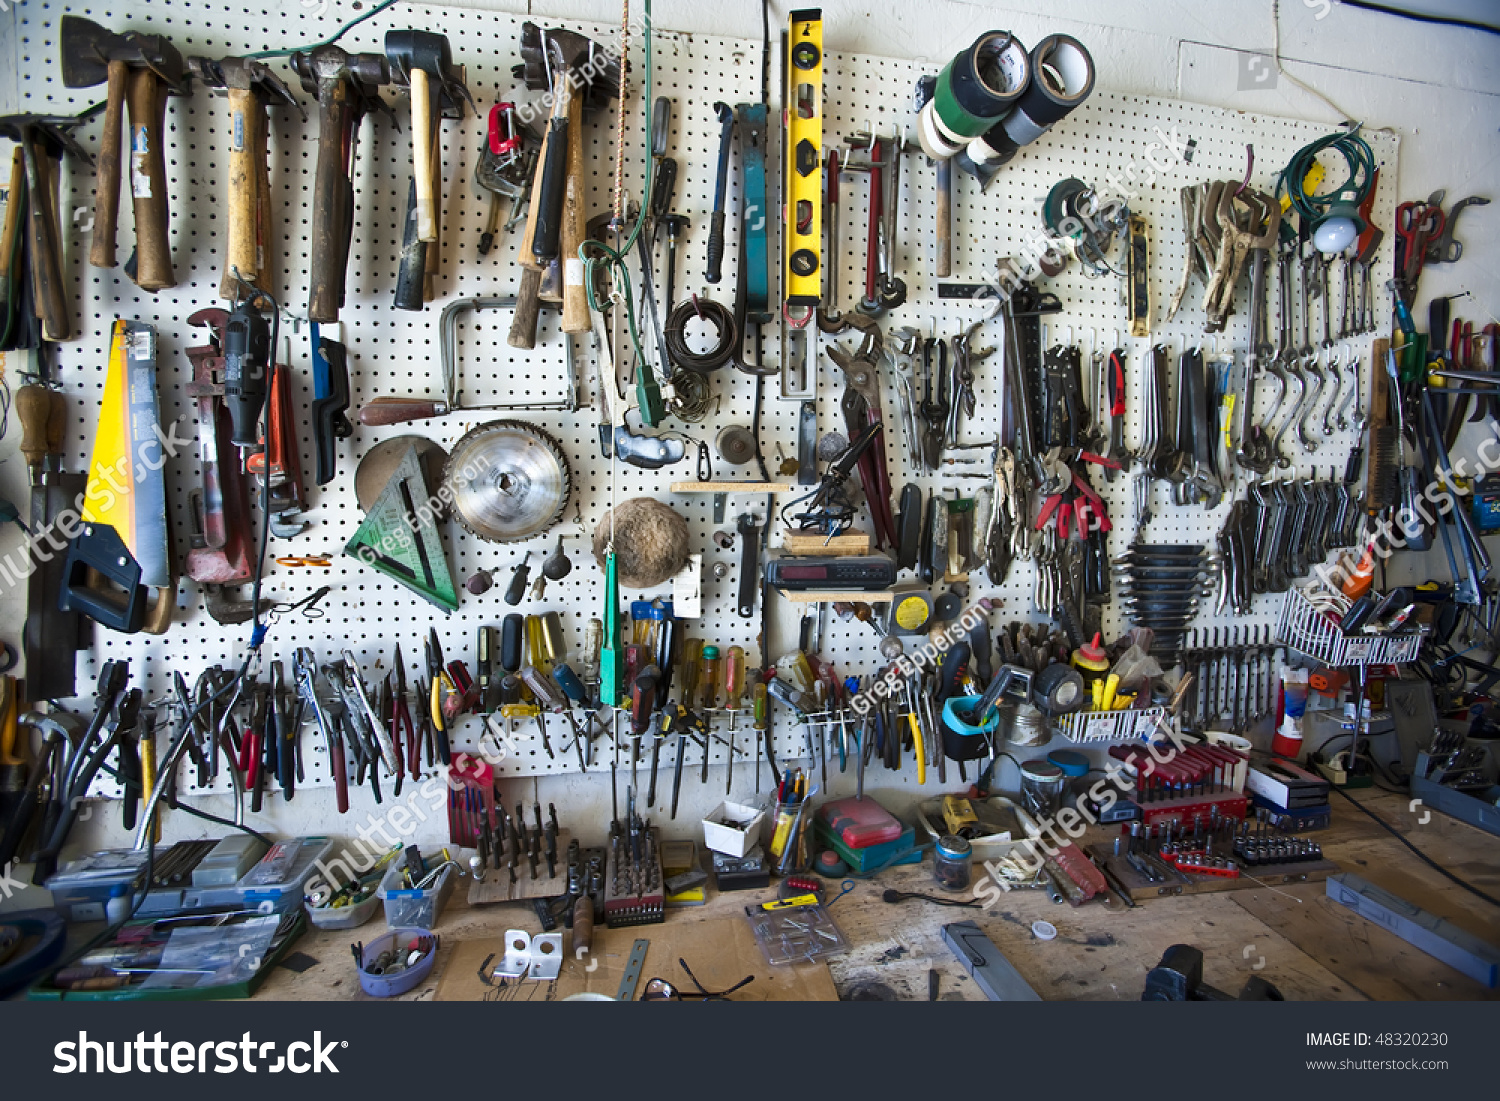 Hand Tools Organized On A Pegboard In A Home Shop Above A